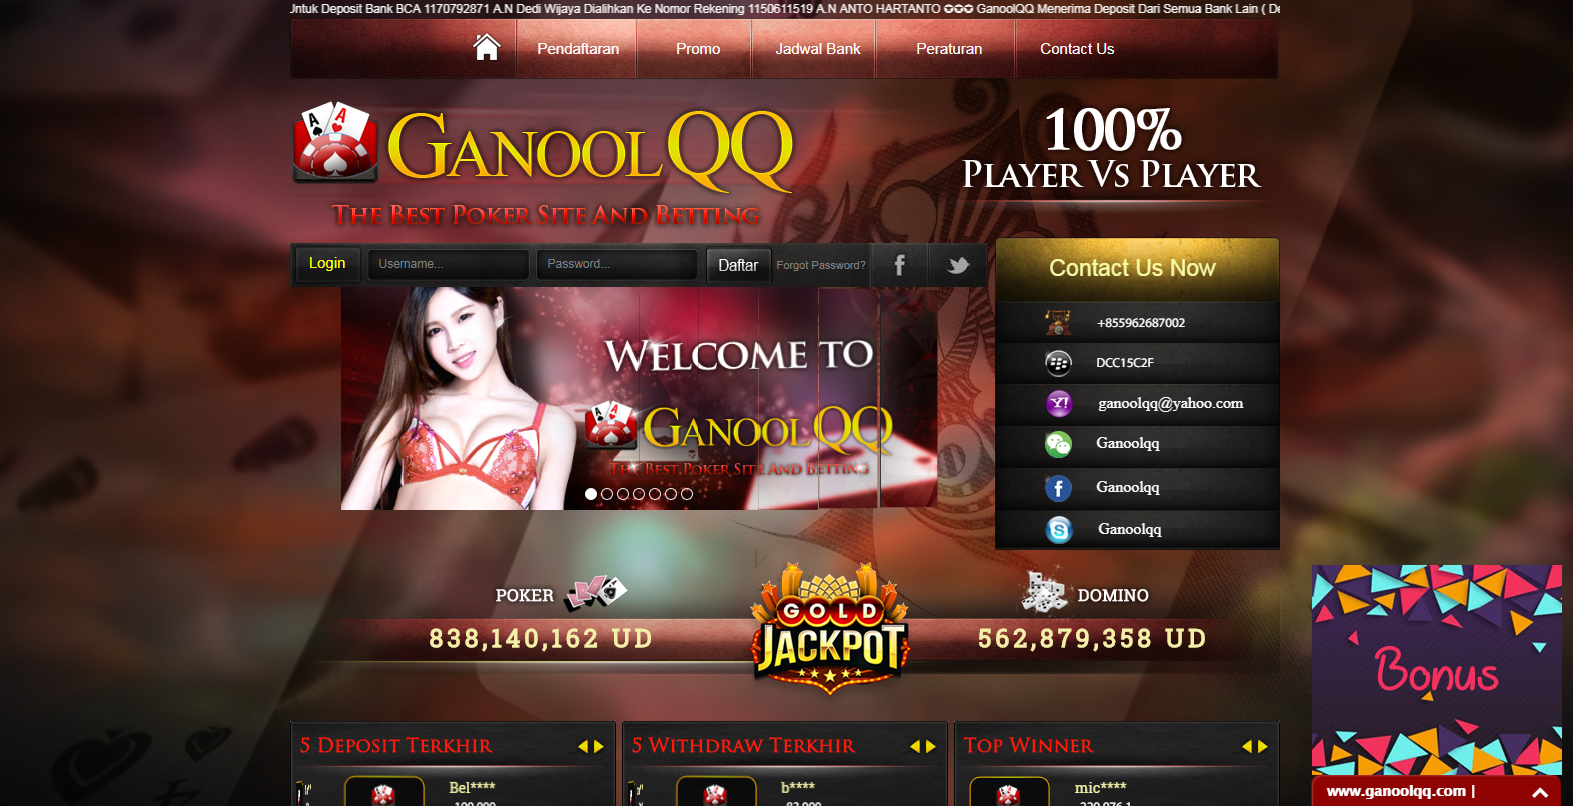 The best casino bonus offers for online players